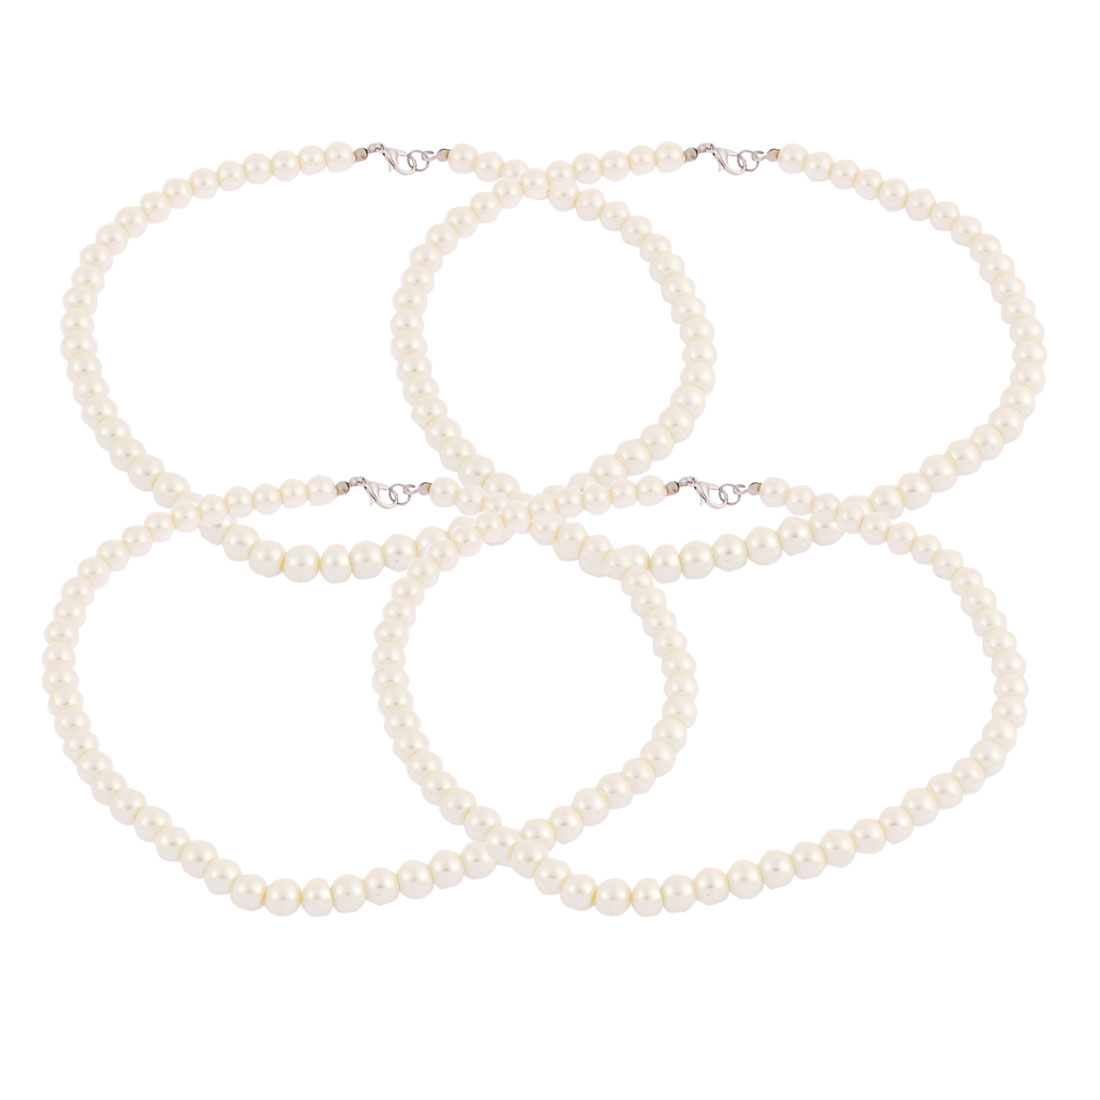 Wedding Party Lady Imitation Pearls Beaded Linked Necklace Chain Neck Decor 4pcs